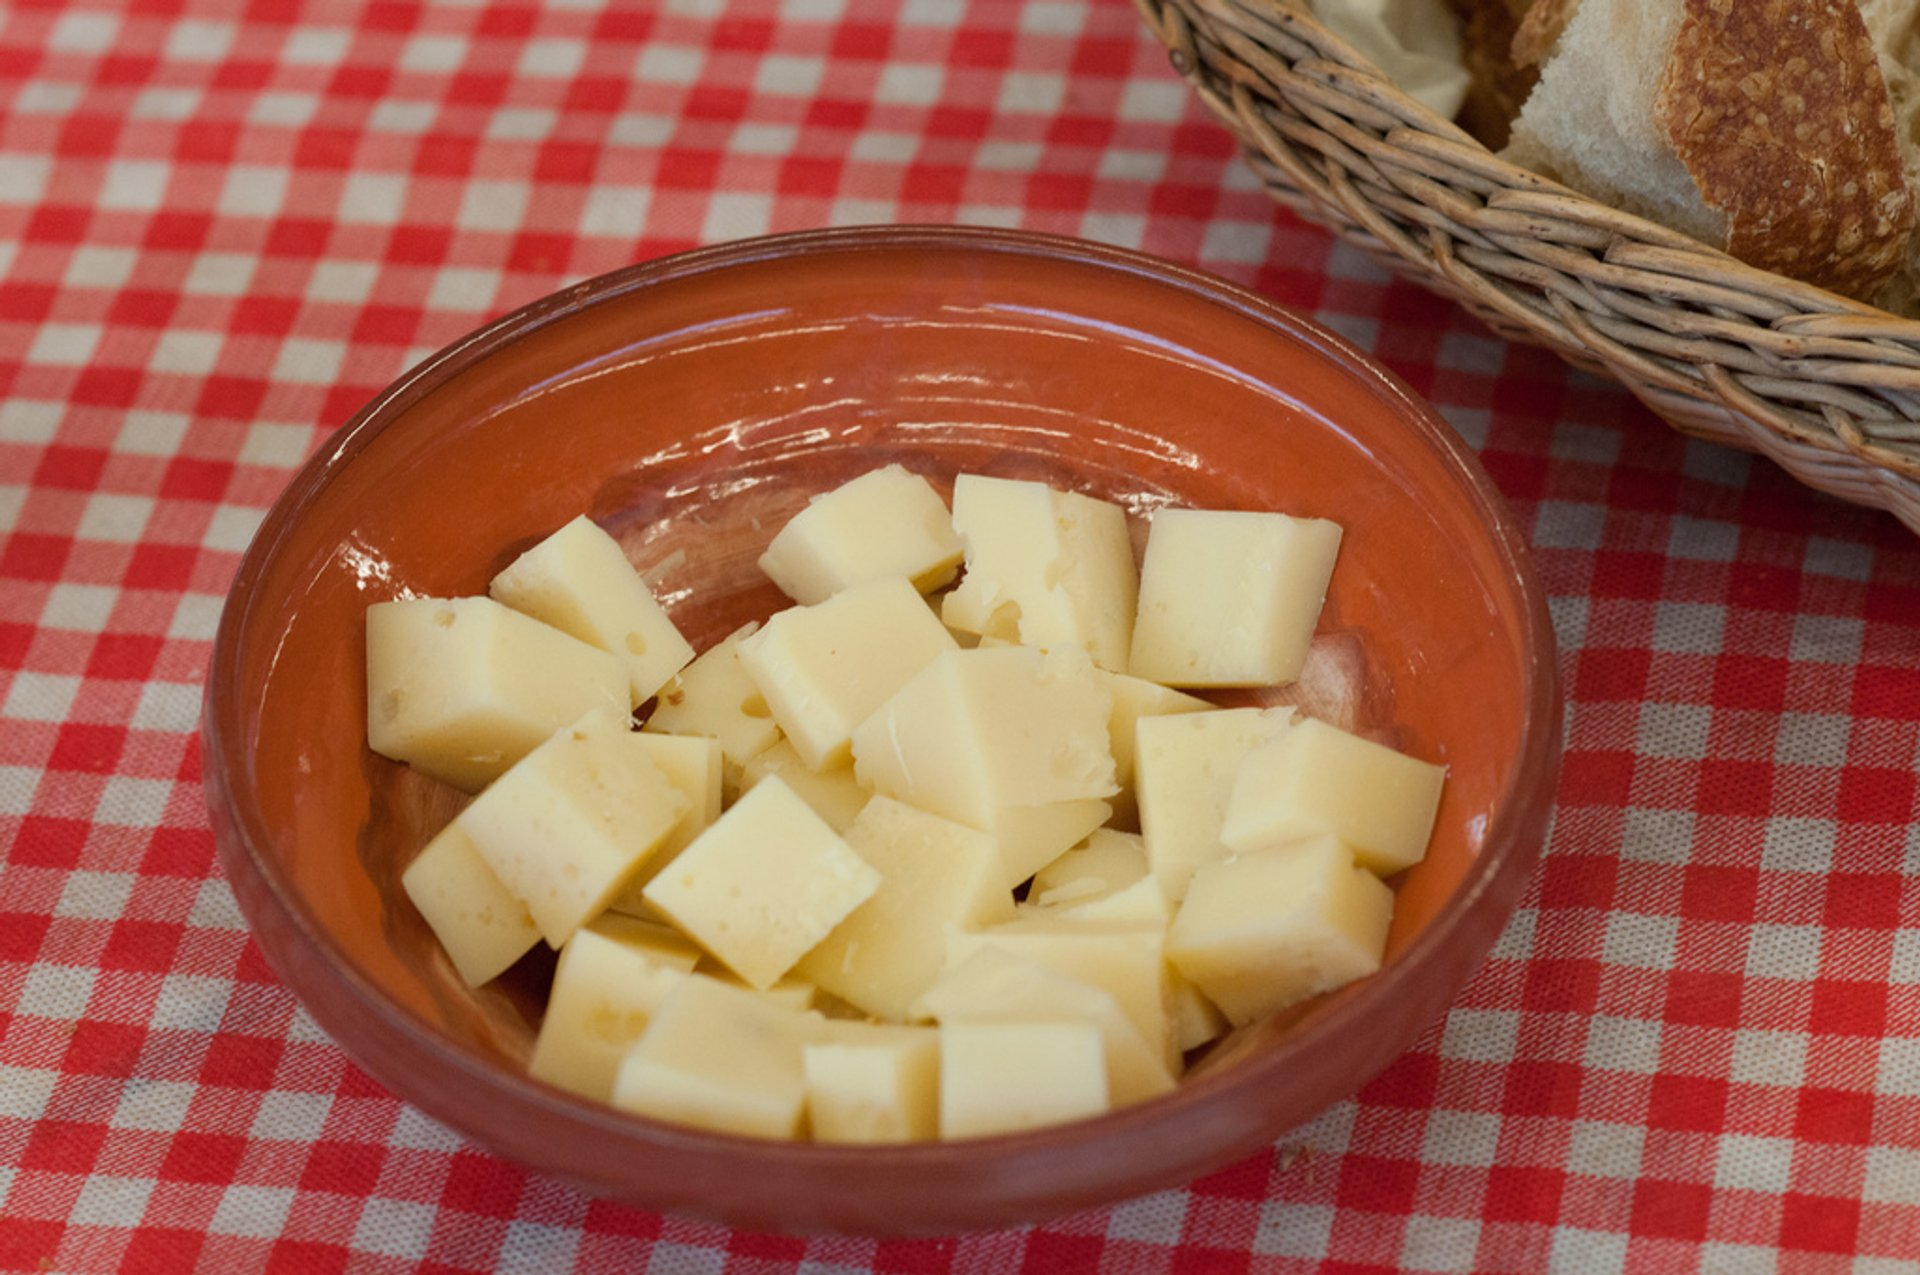 Cheese in Slovenia - Best Season 2020